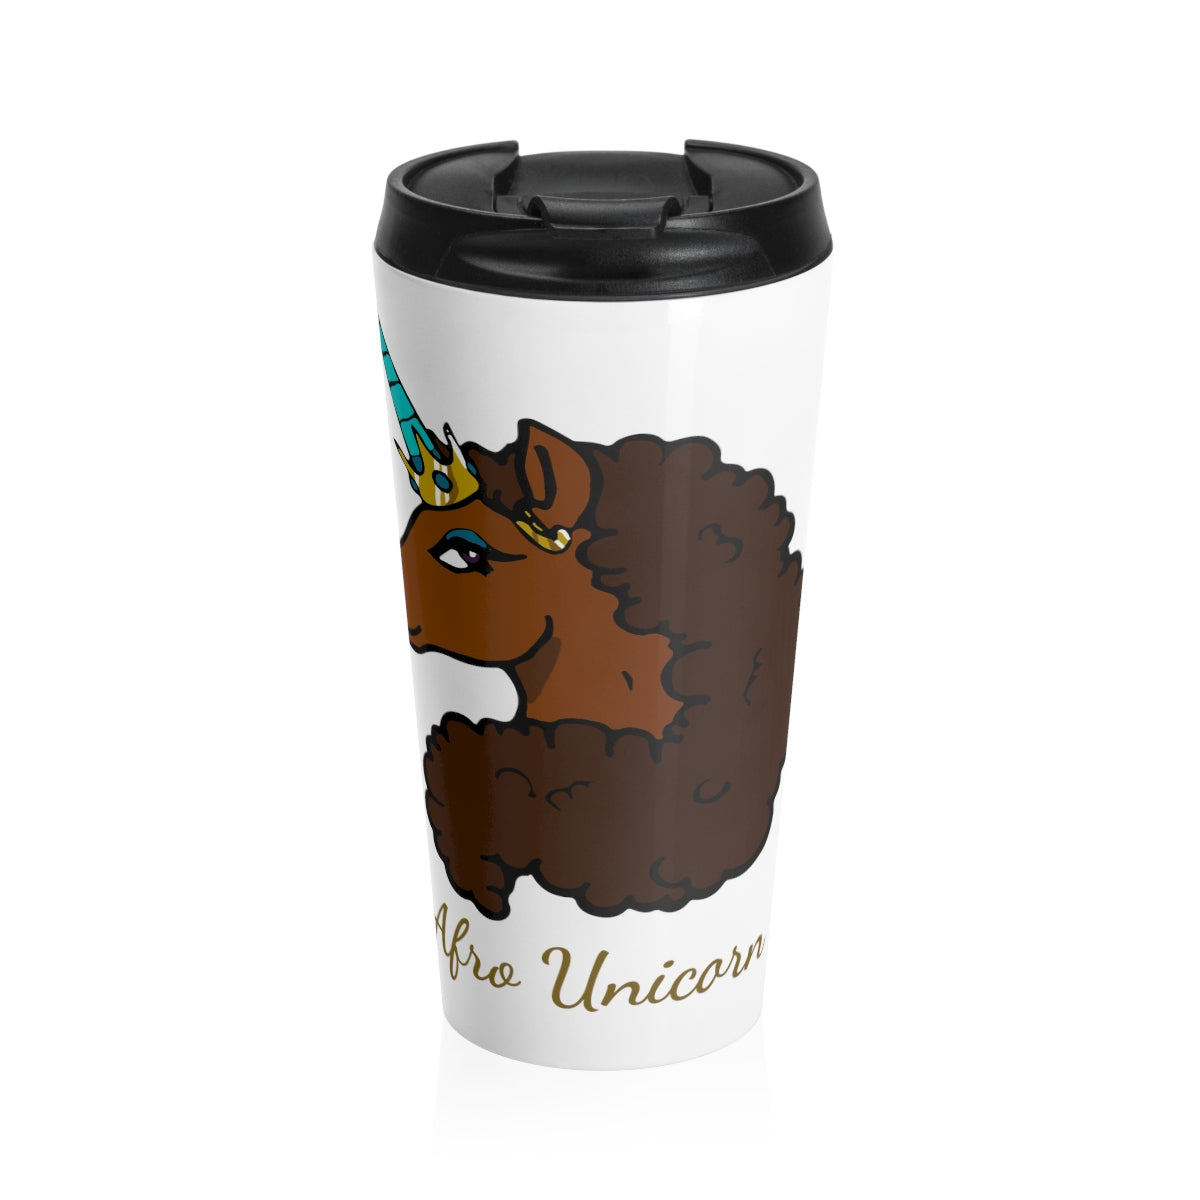 Afro Unicorn Stainless Steel Travel Mug - Caramel- Afro Unicorn